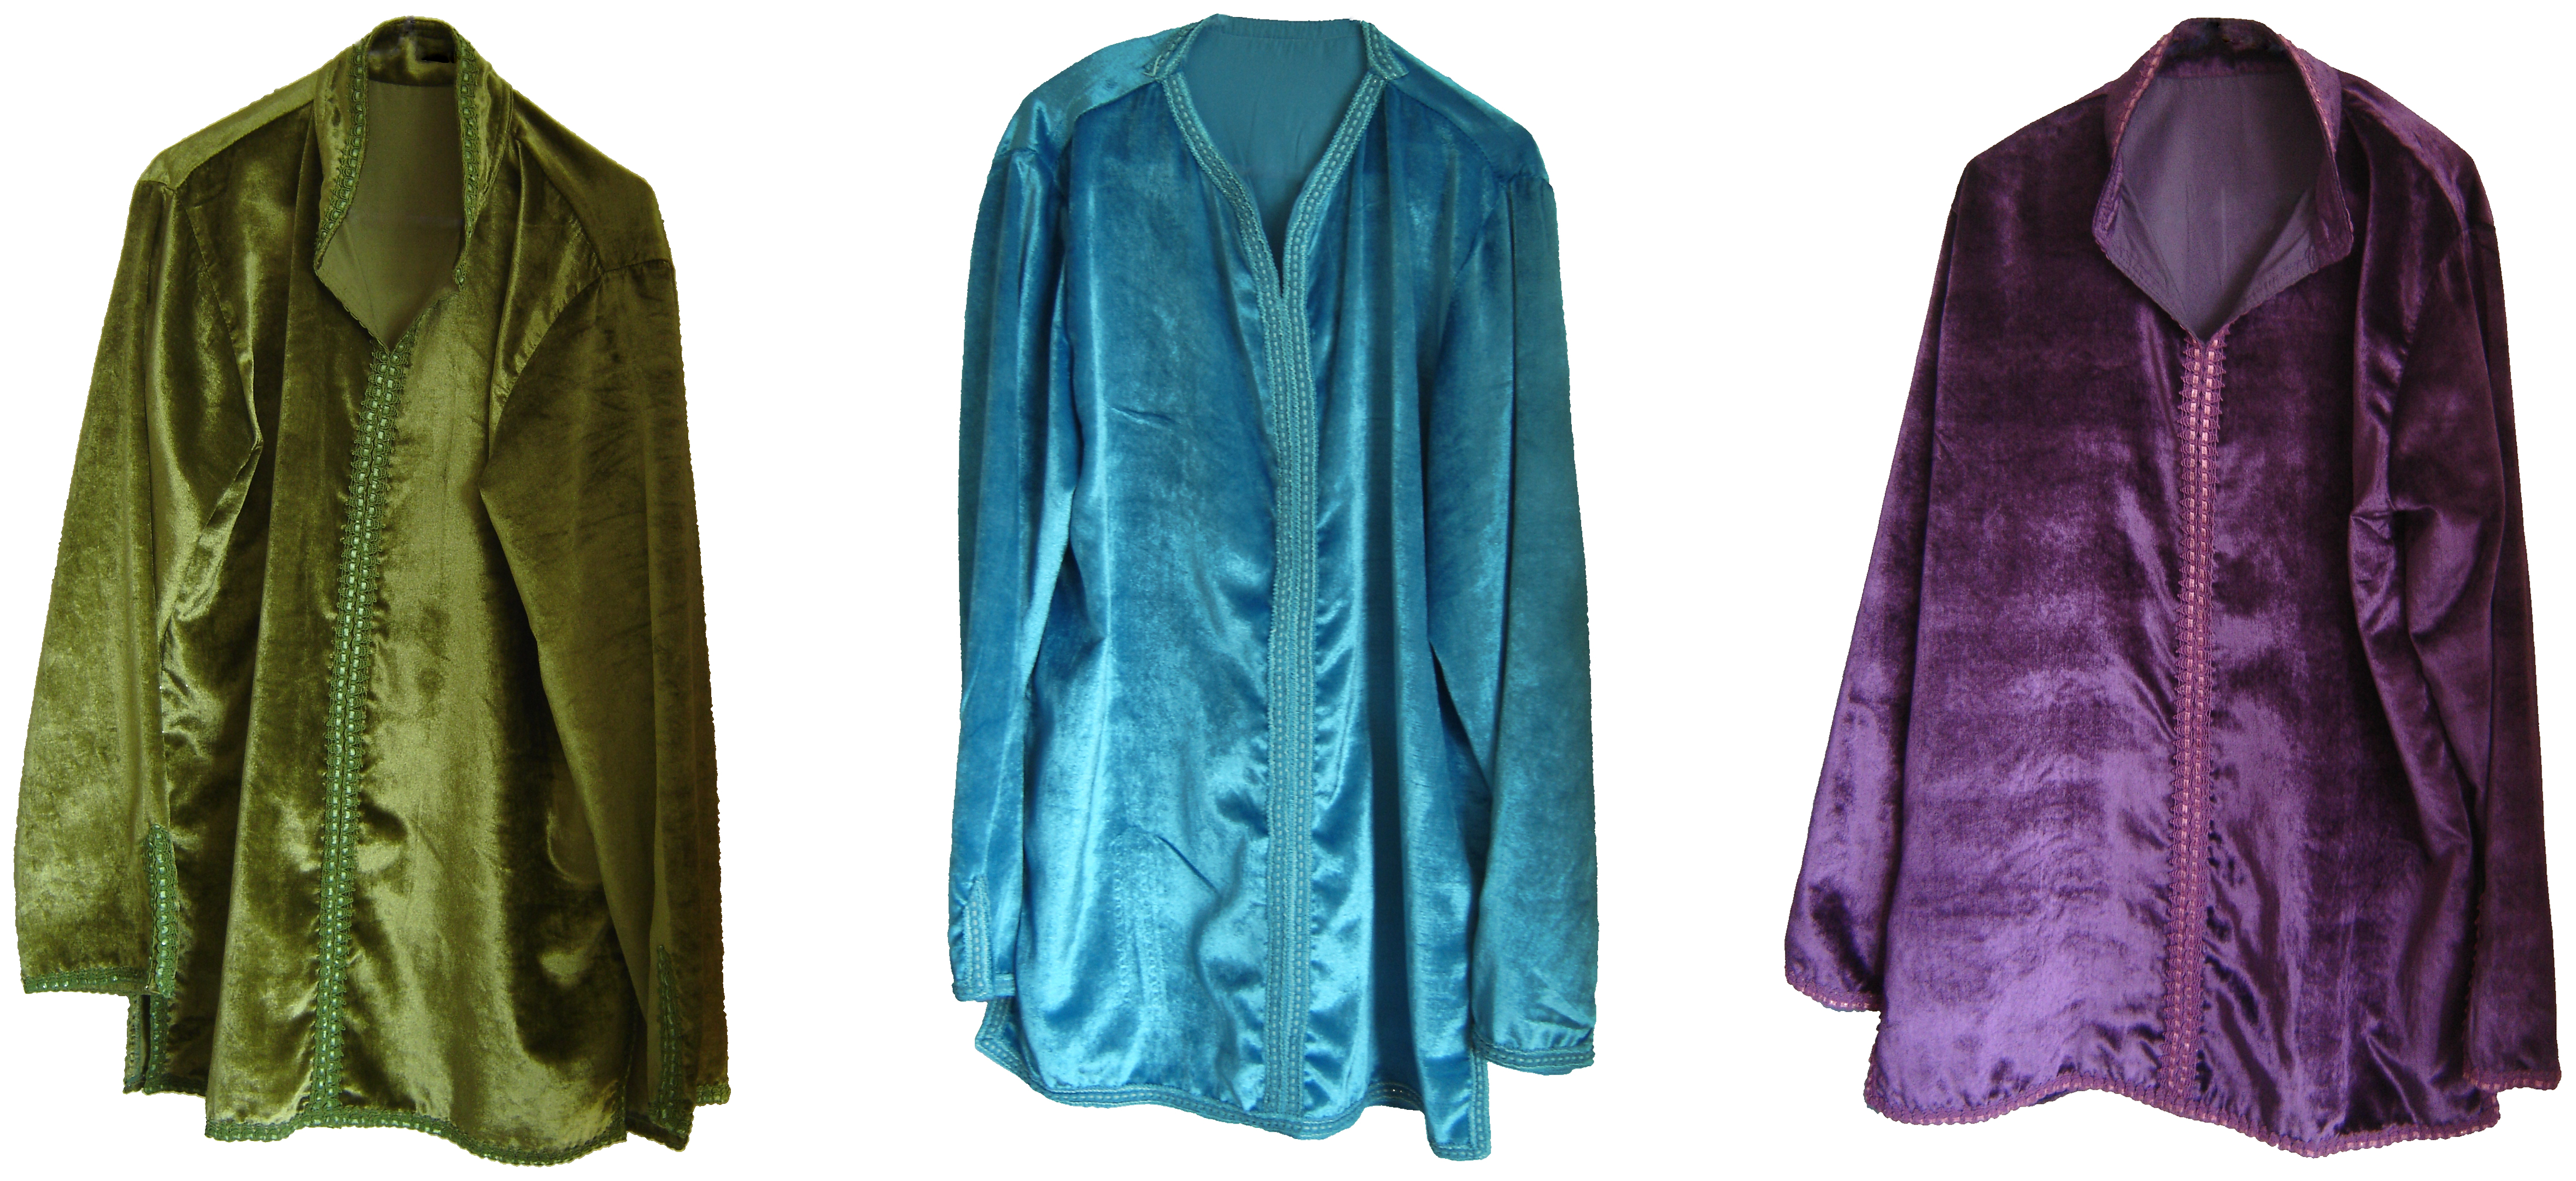 Sage green ice blue and plum velvet Moroccan shirts, from Fez, 71 Golborne Road, London